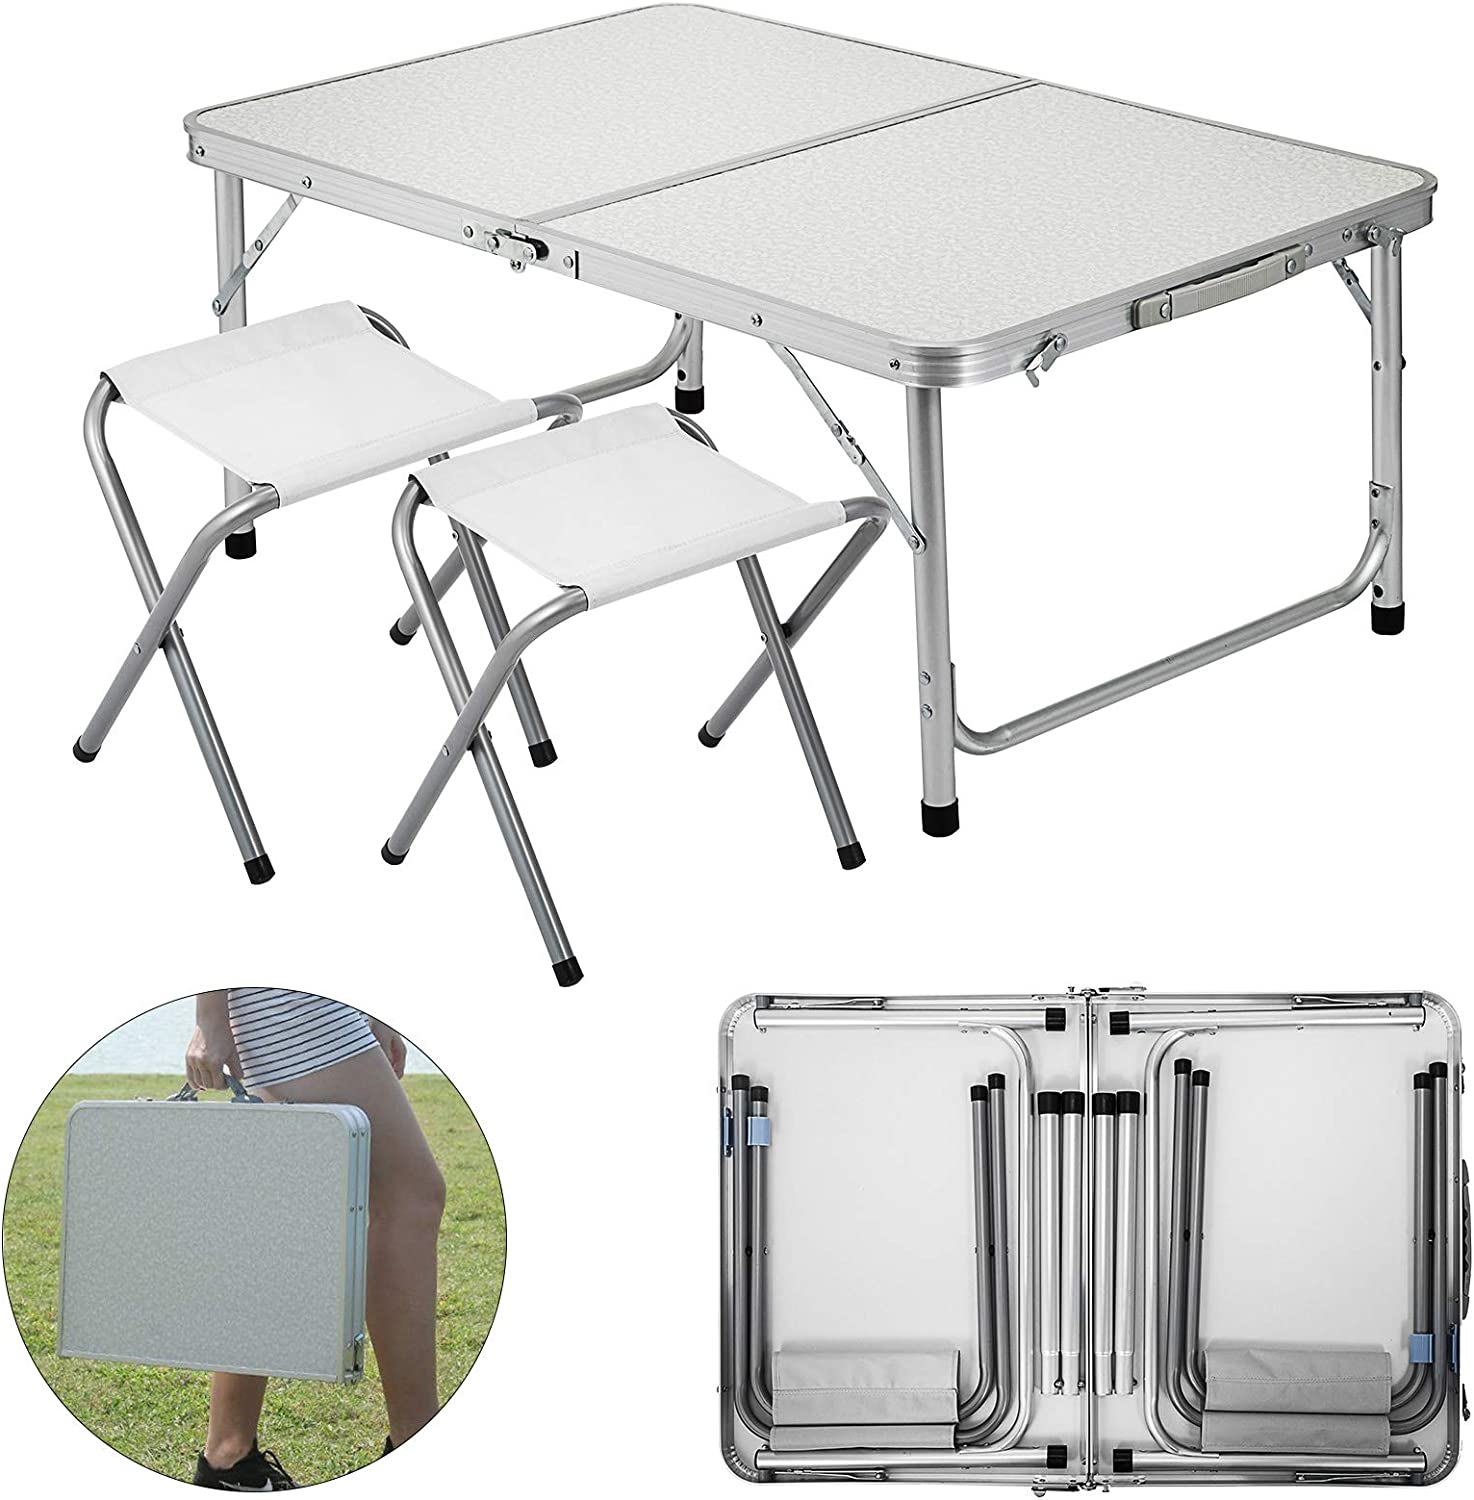 Folding Camping Table And Chair Set 4 Person Portable Family Outdoor Picnic Desk